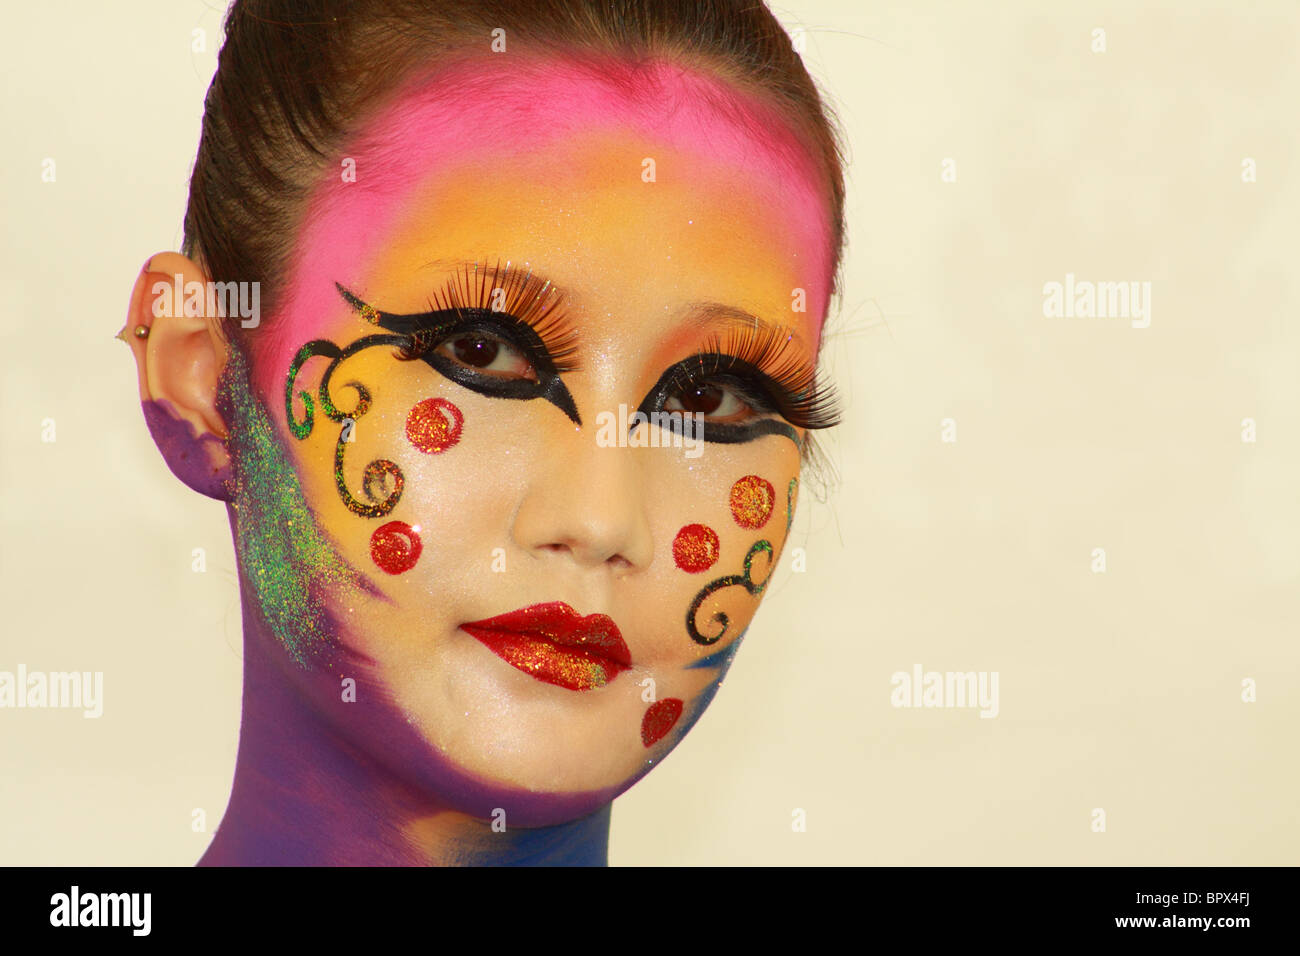 Daegu International Bodypainting Festival Stock Photo